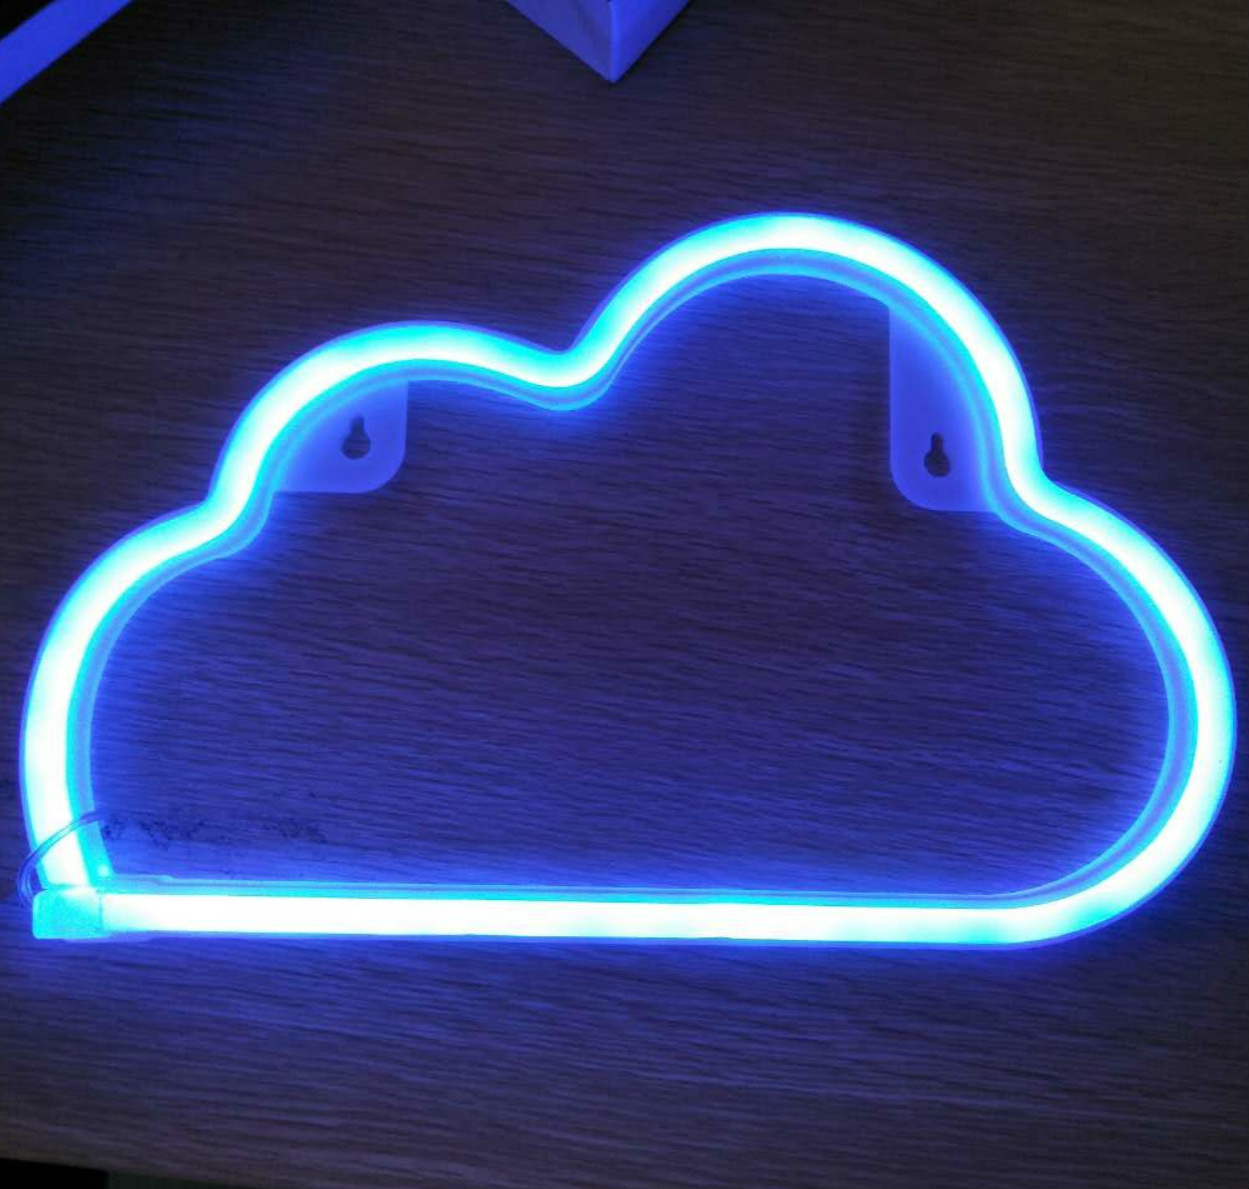 led neon lighting cloud shape neon light wall lamp word poster background room decor shop. Black Bedroom Furniture Sets. Home Design Ideas